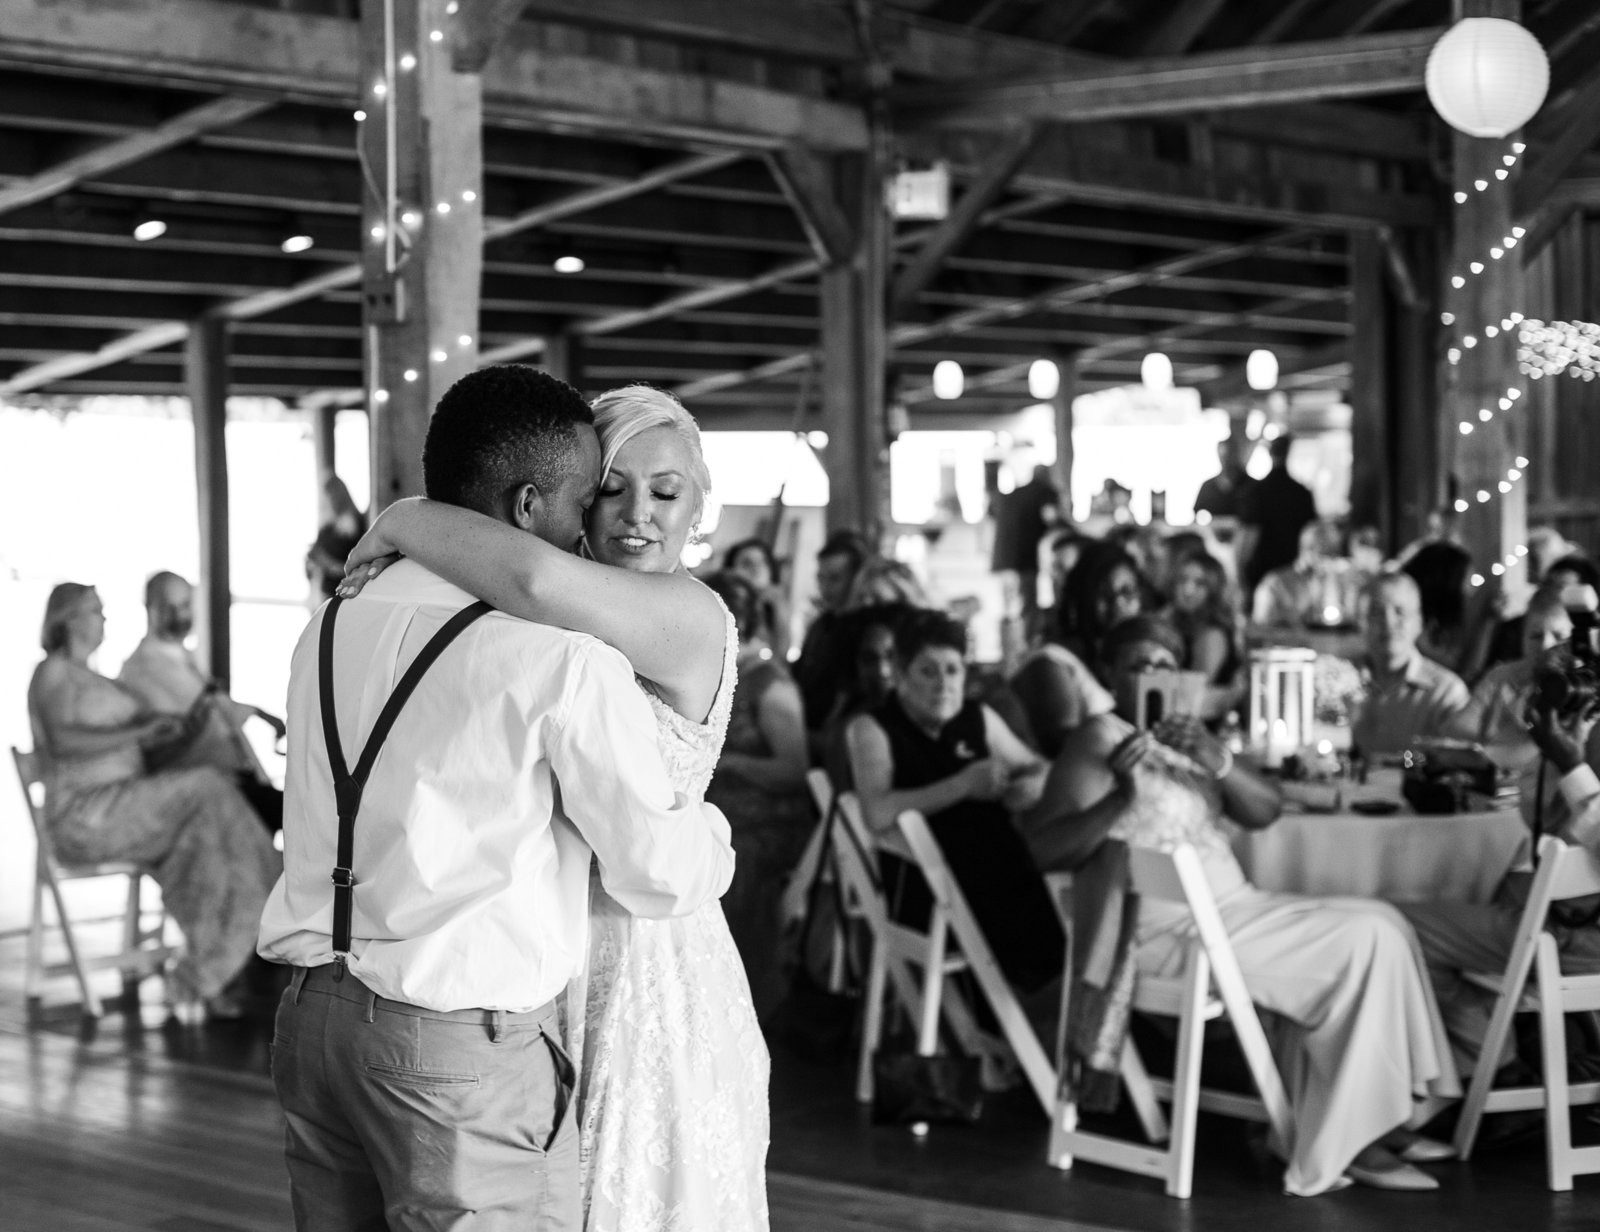 Bride and groom embrace during first dance at Betsy's Barn wedding